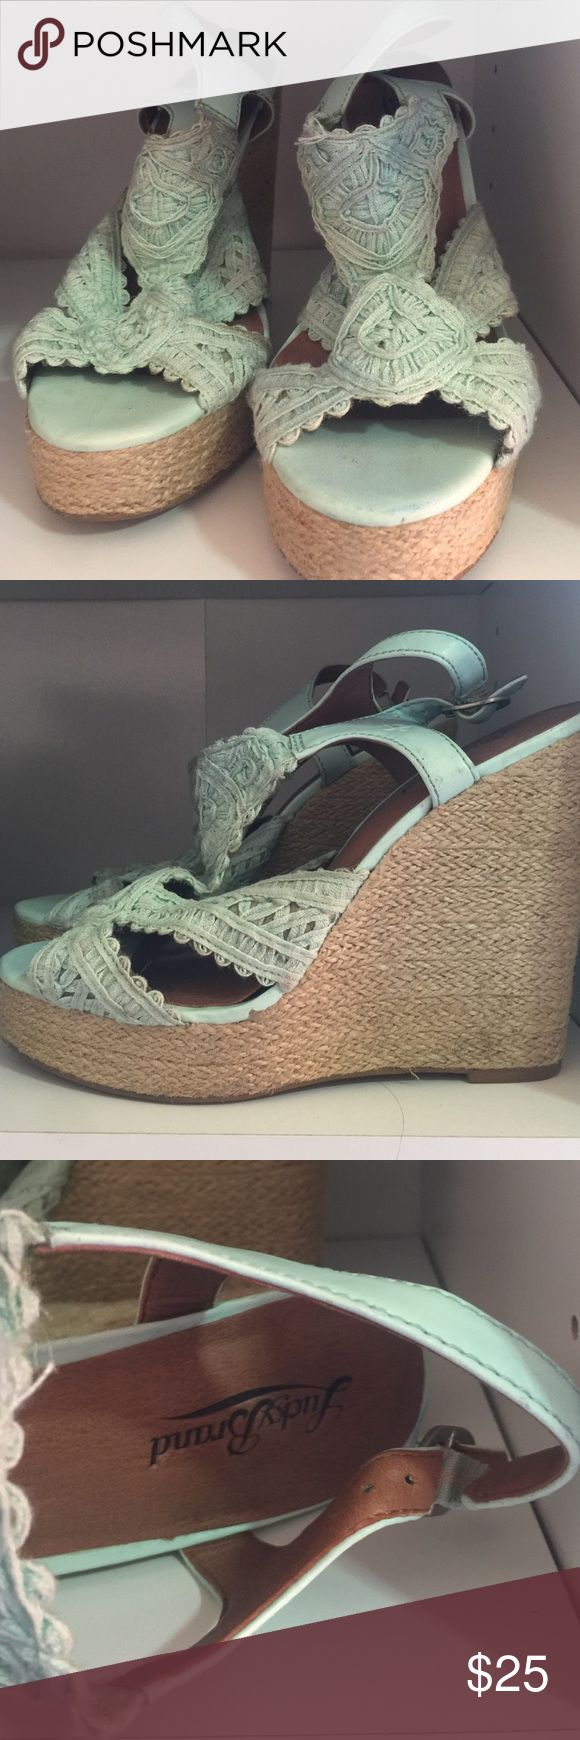 Lucky Brand Mint wedges heels Slightly dirty Mint Lucky Brand wedges-worn a few times. Lucky Brand Shoes Wedges